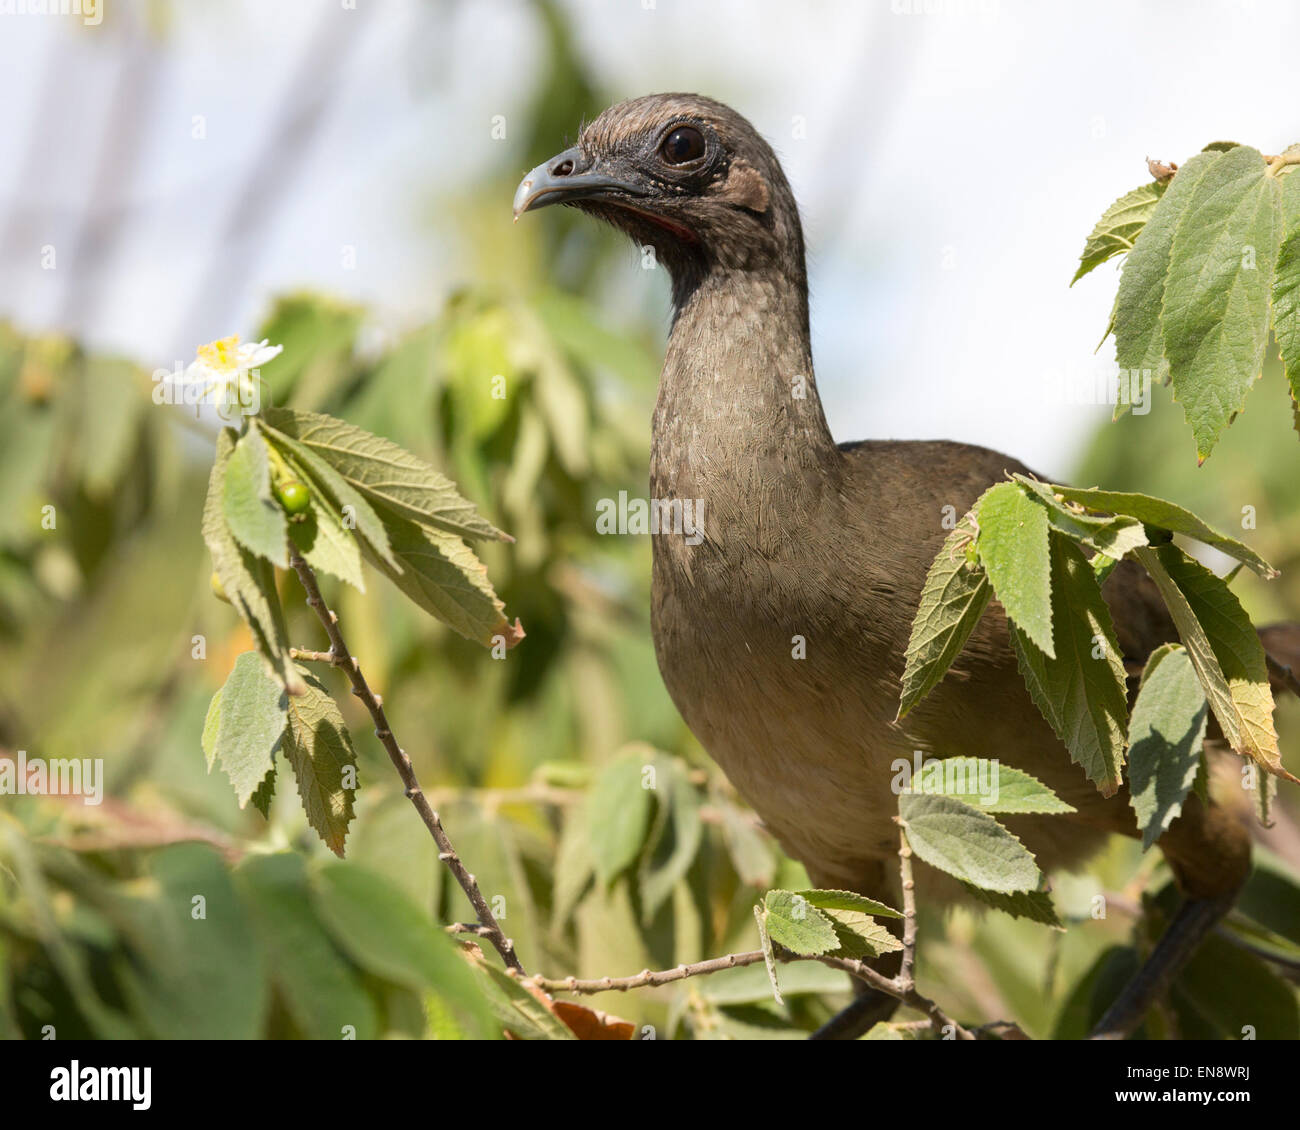 Plain Chachalaca (Ortalis vetula) perched in tree - Stock Image